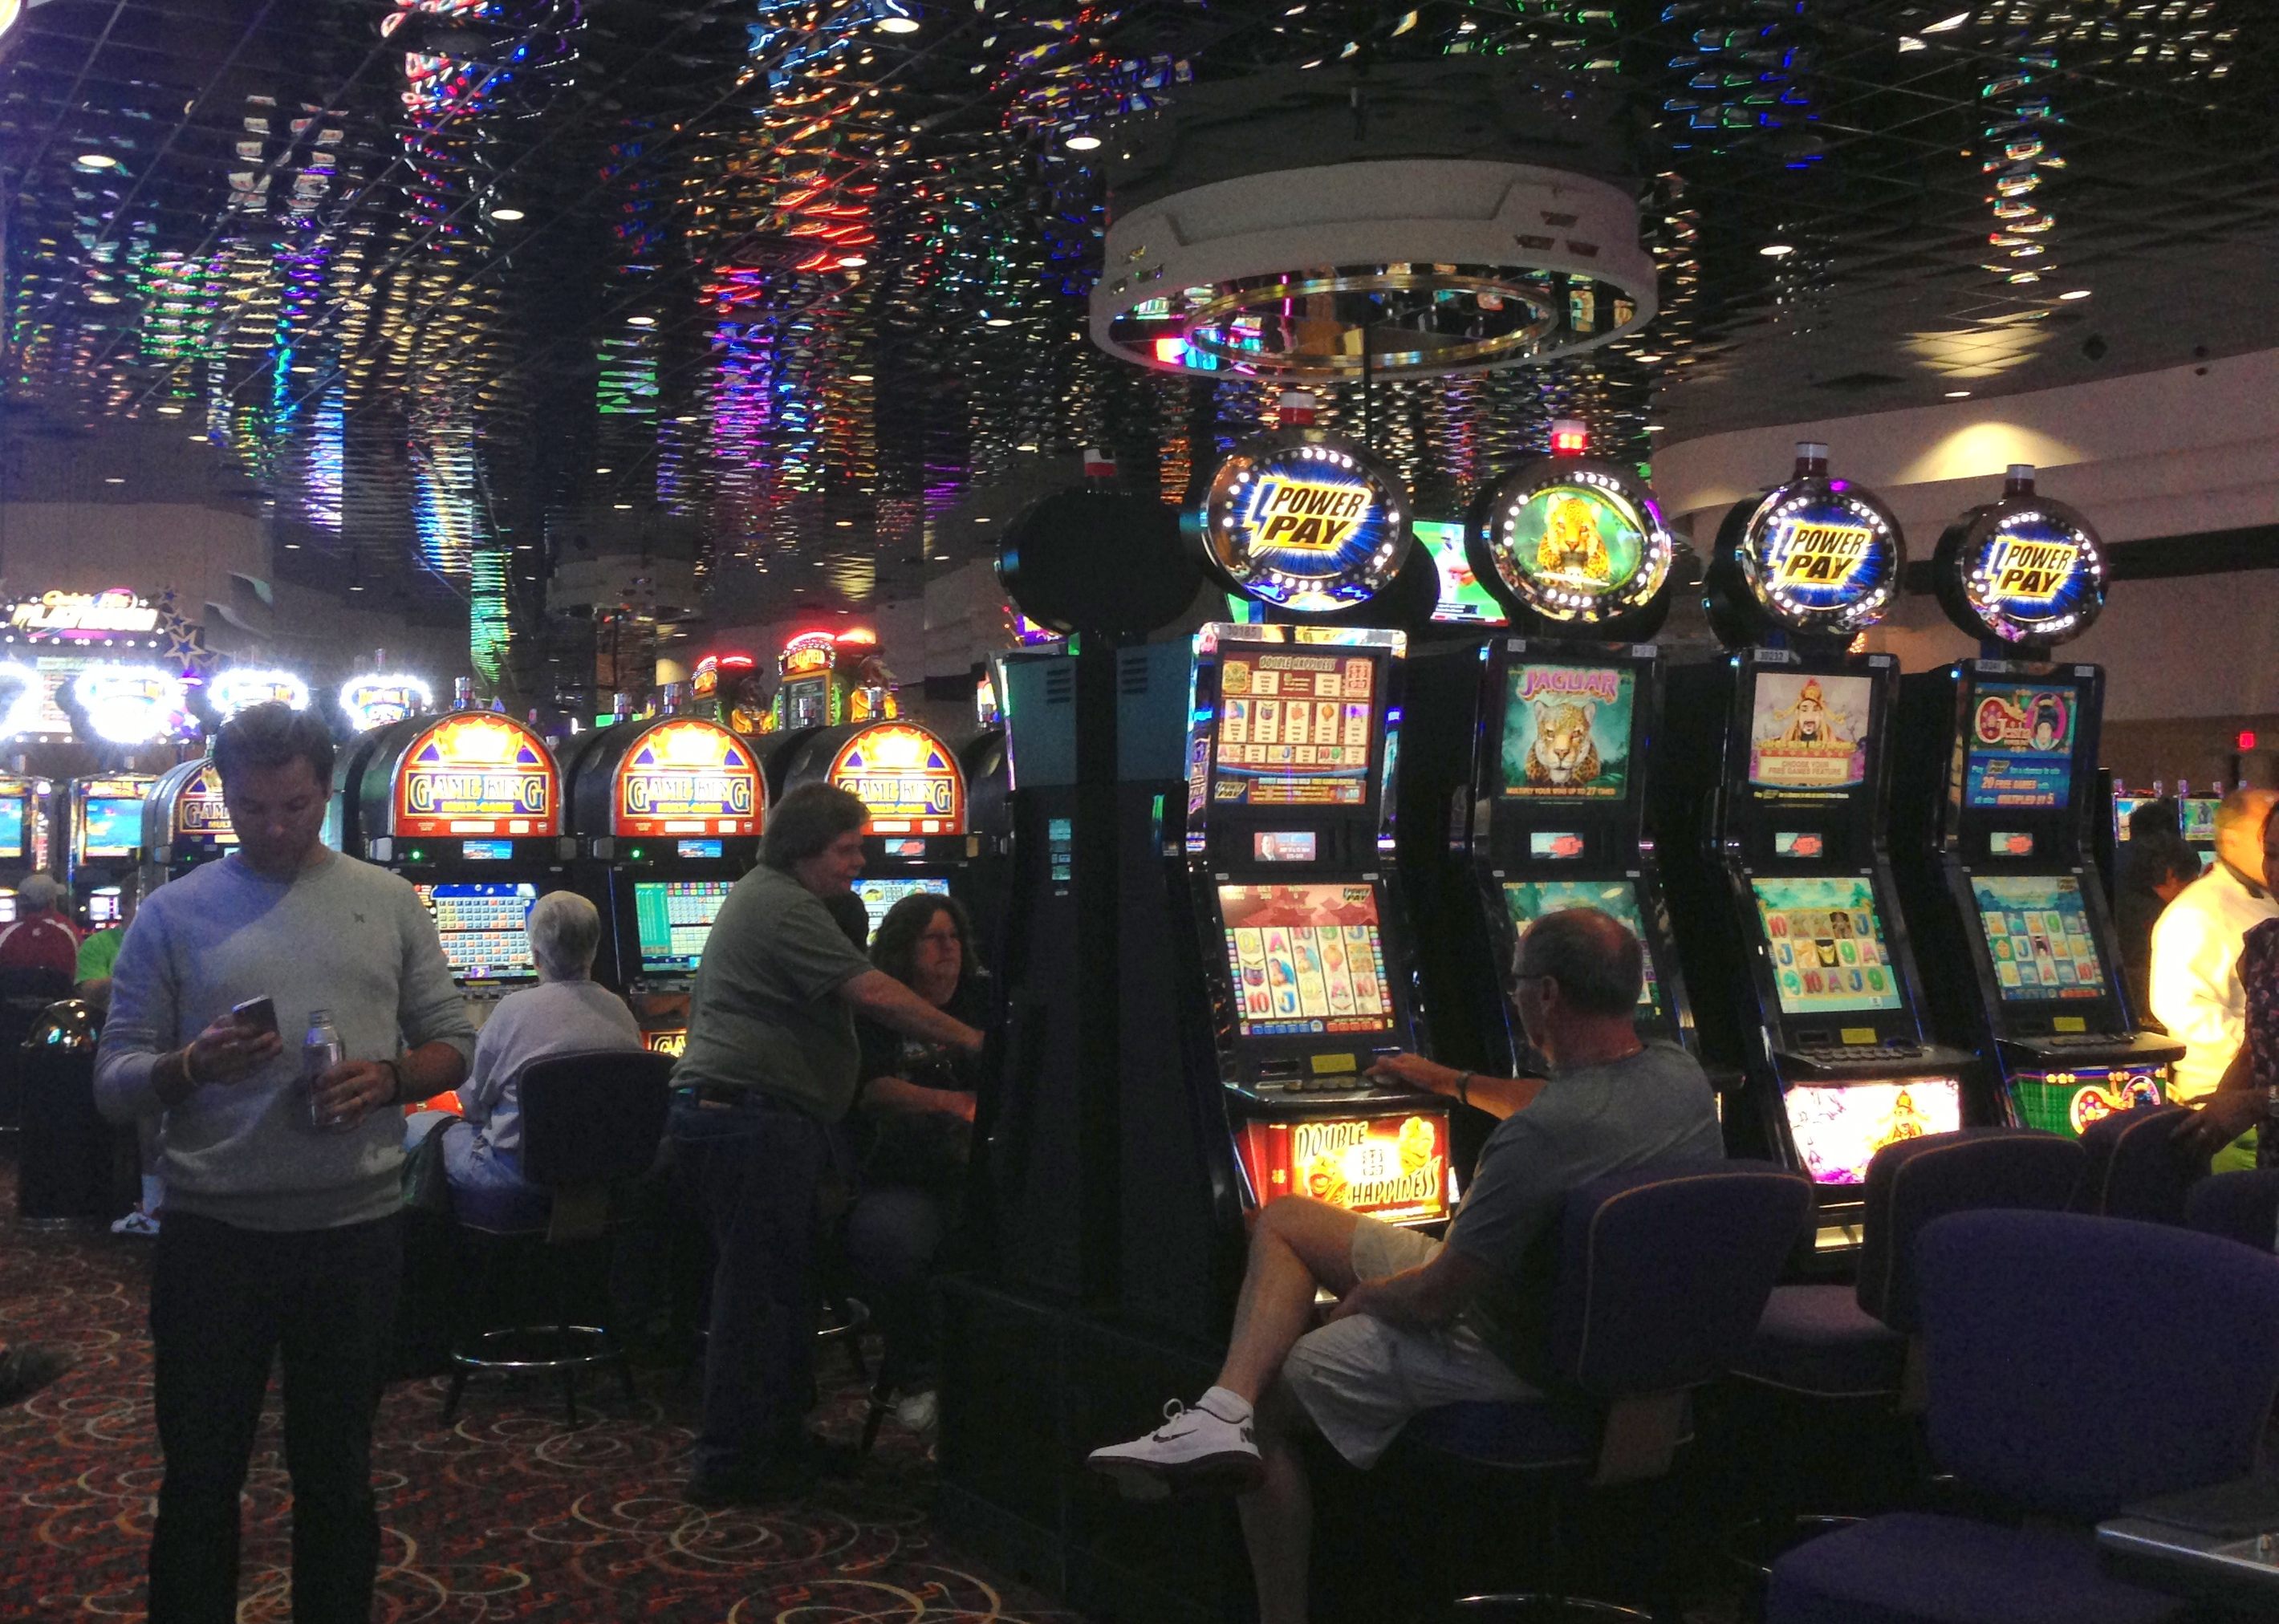 Chinook winds casino in lincoln city oregon casinos microgaming